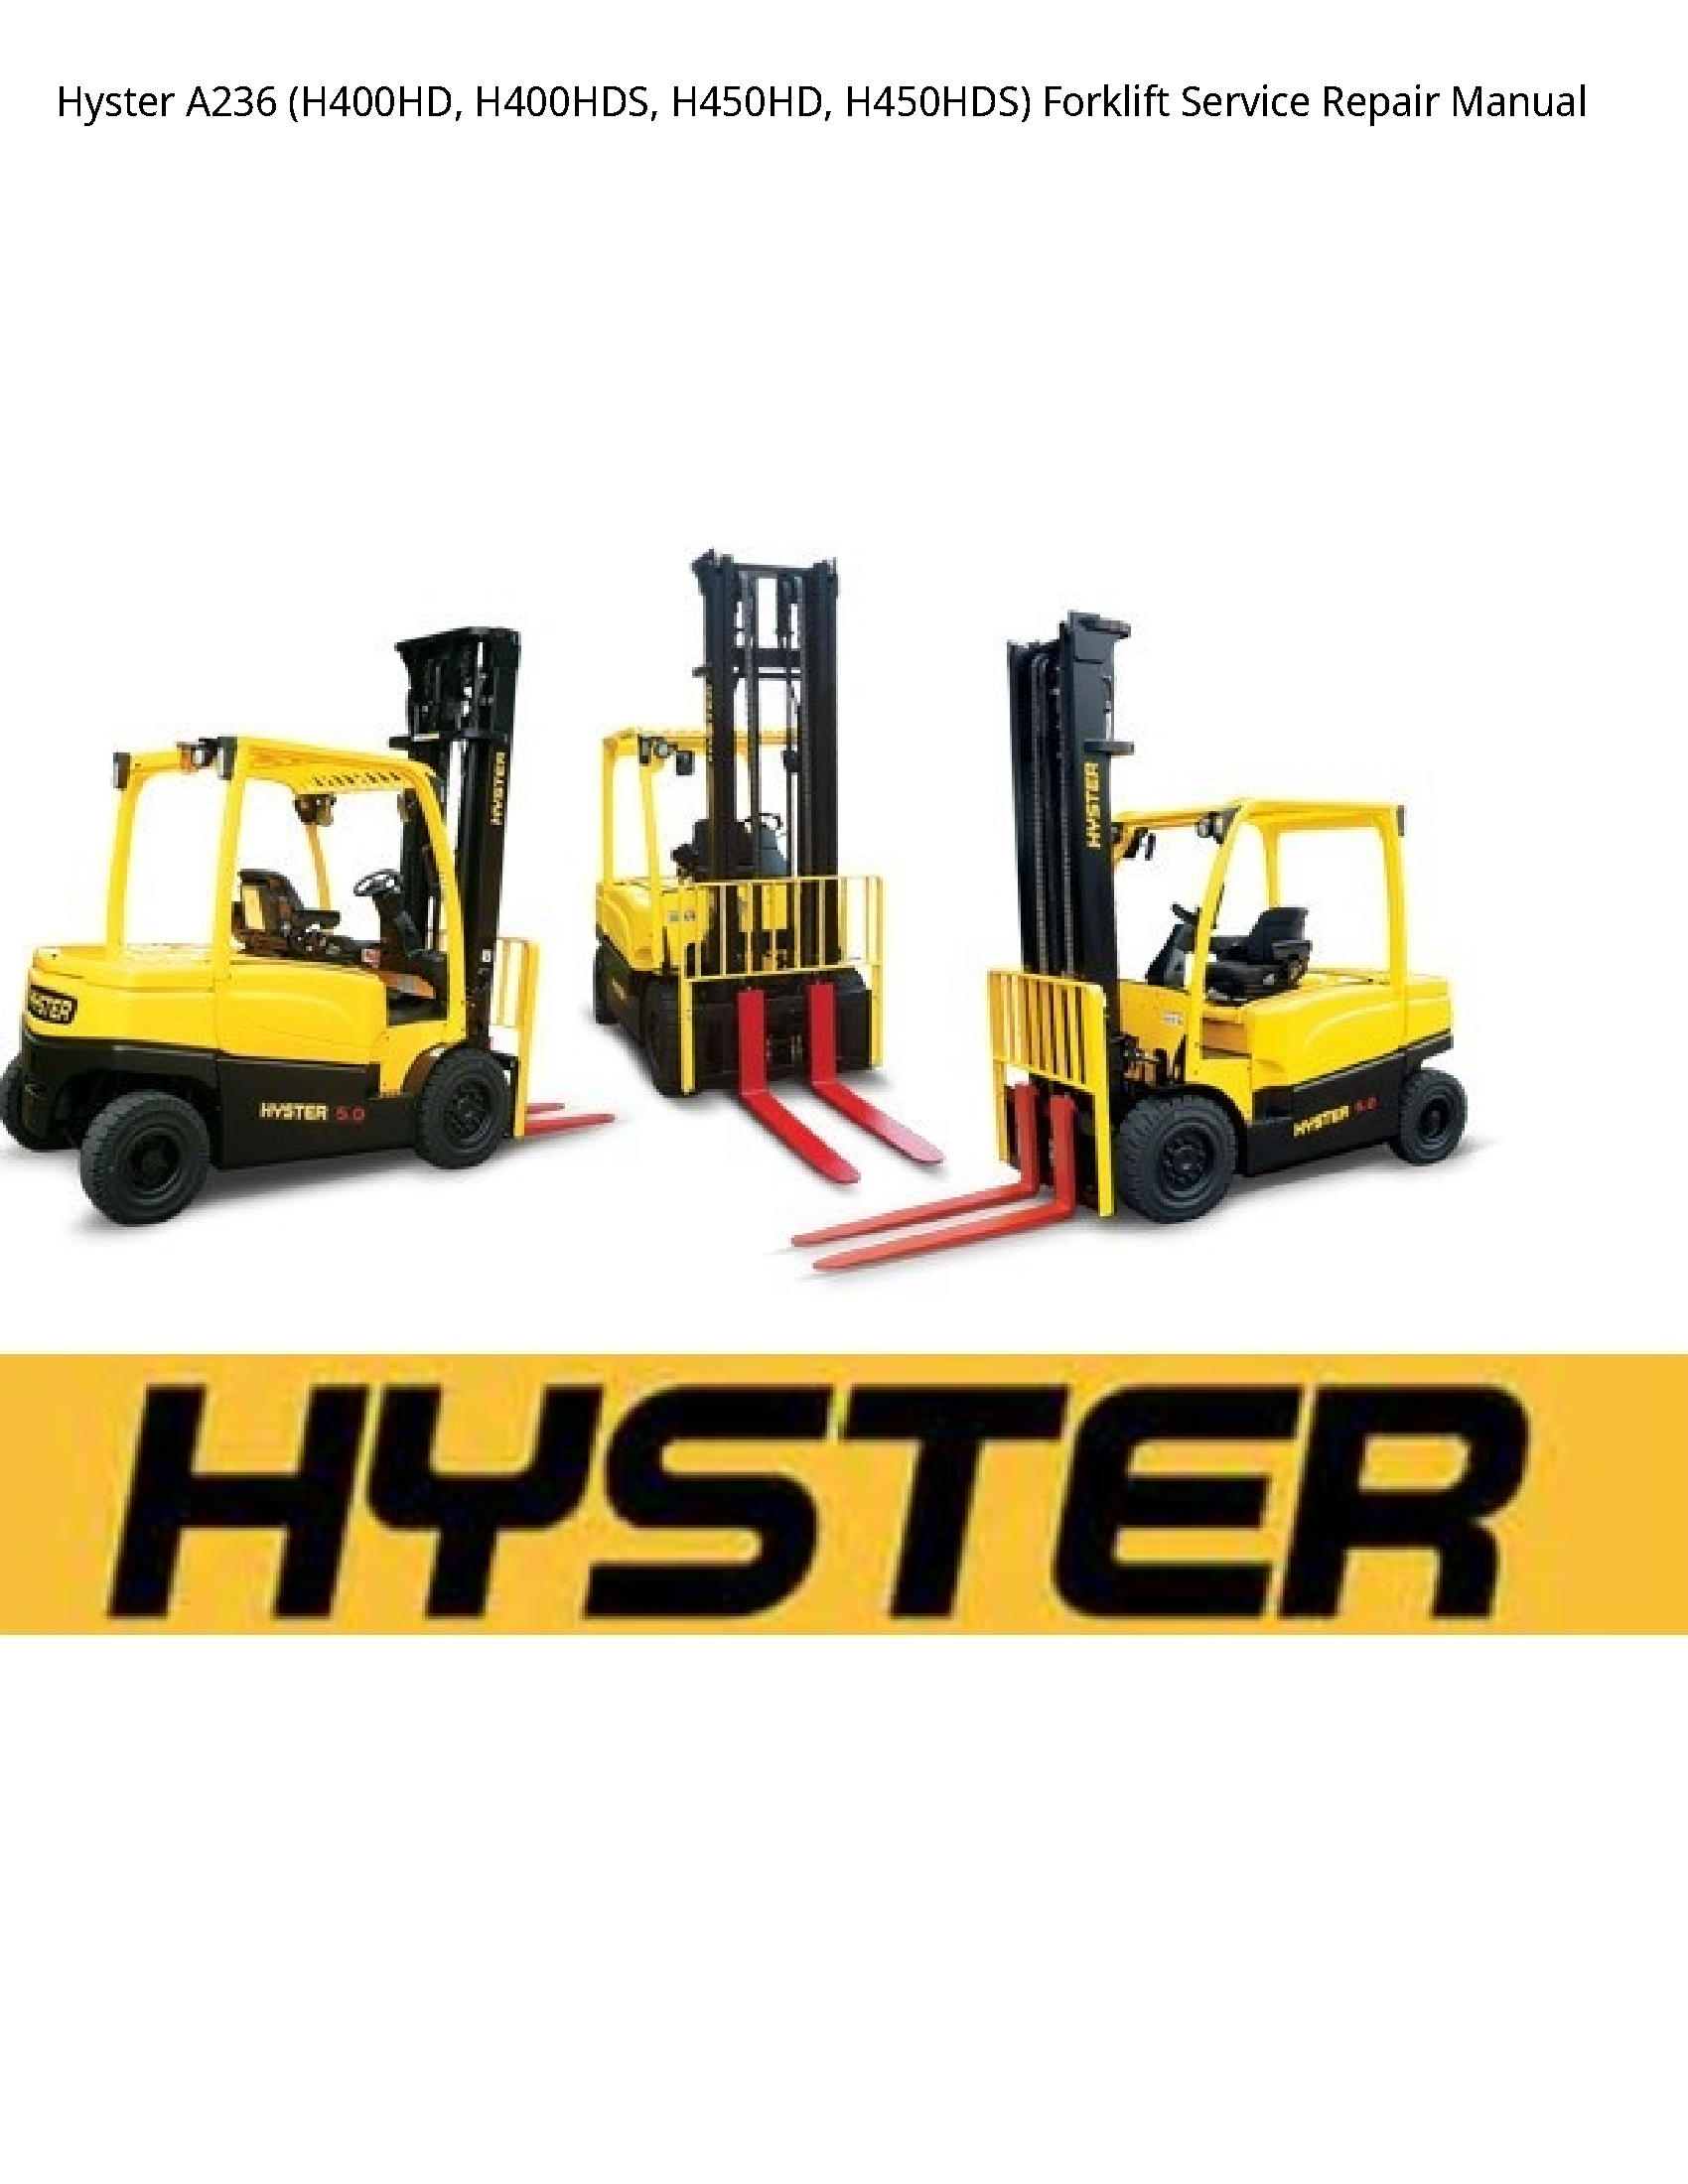 Hyster A236 Forklift manual